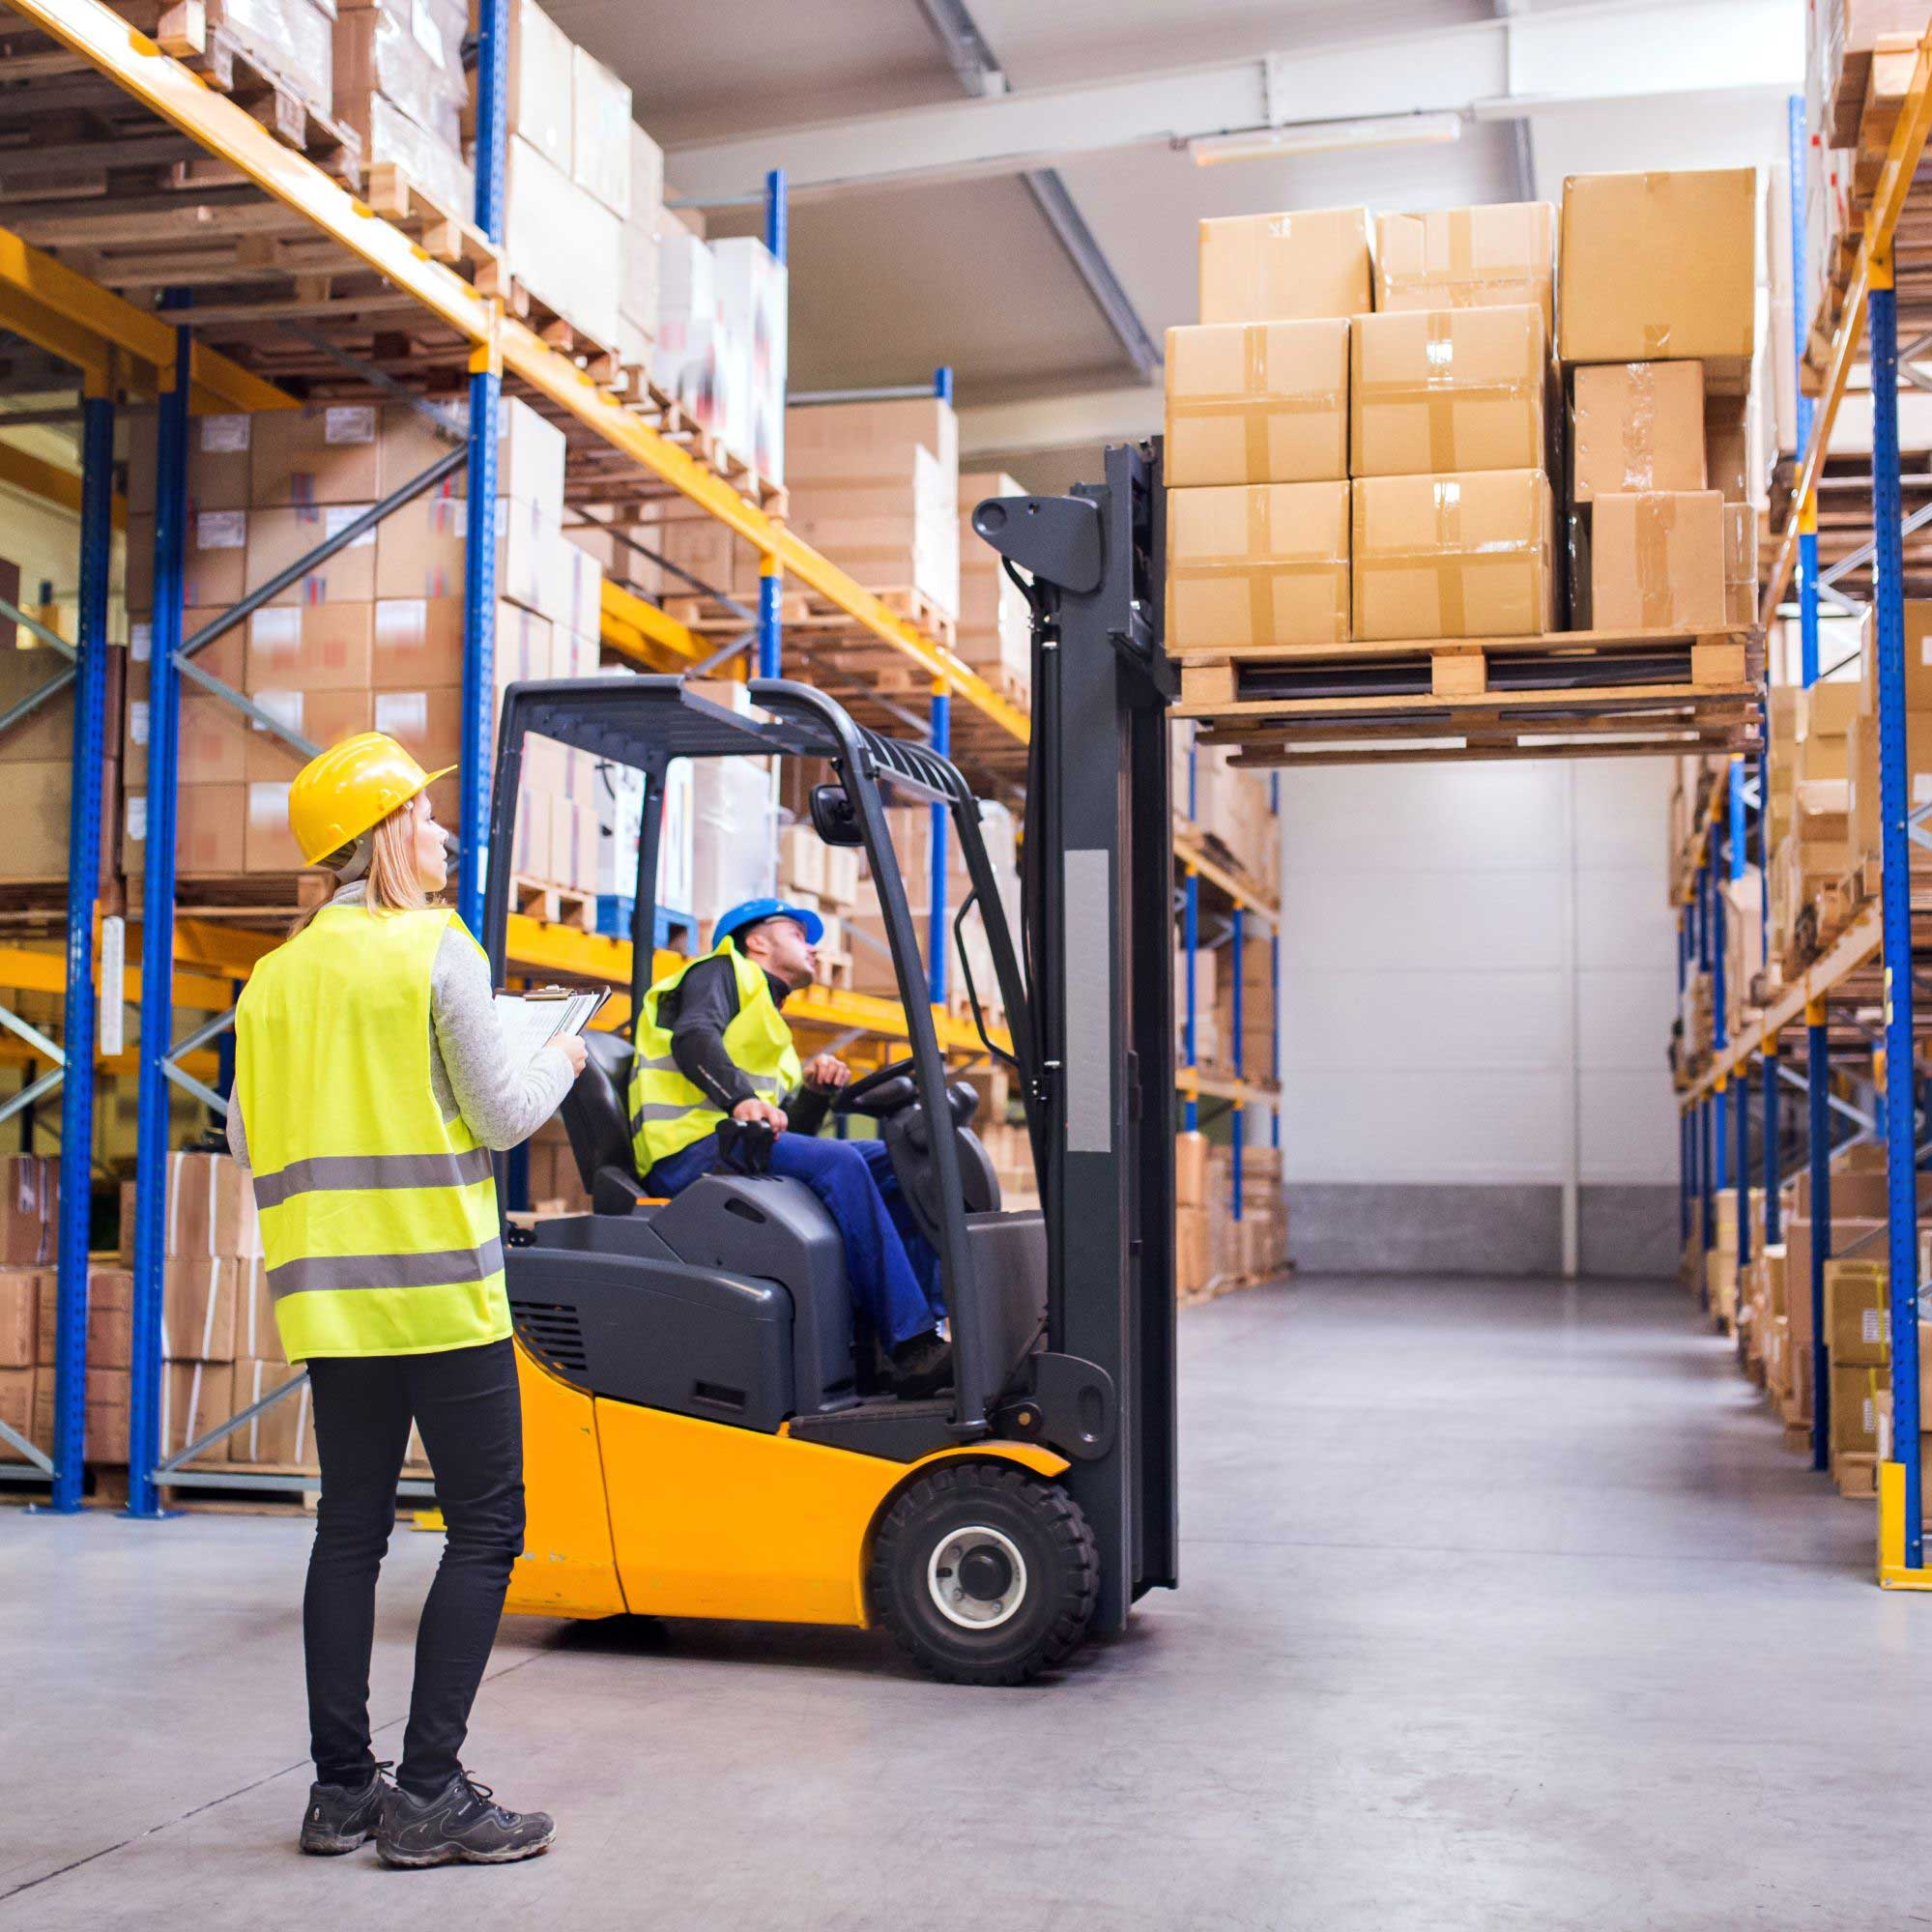 A Guide to Forklift Controls: How to Operate a Forklift